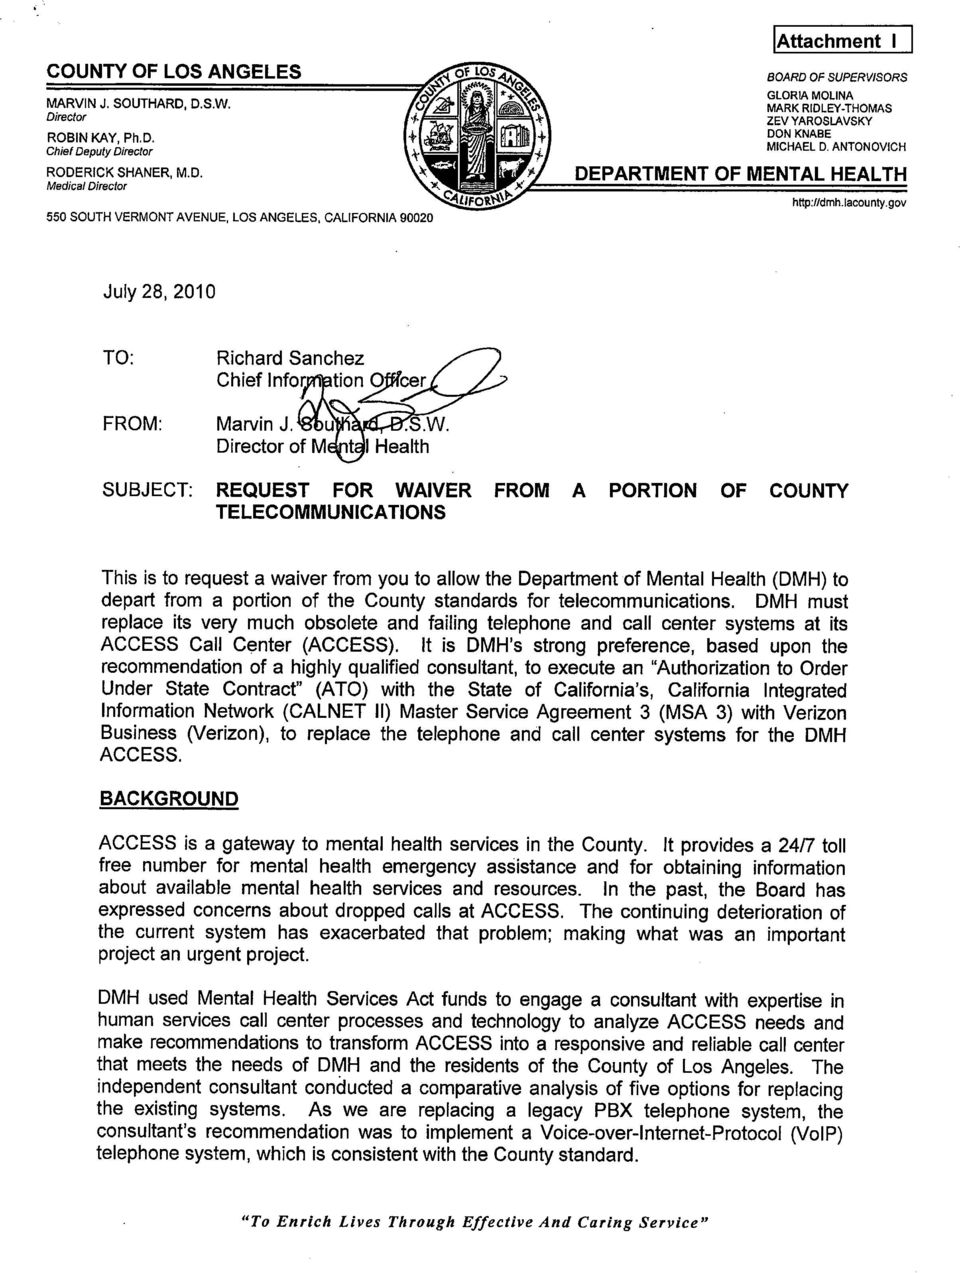 gov July 28, 2010 TO: FROM: SUBJECT: REQUEST FOR WAIVER FROM A PORTION OF COUNTY TELECOMMUNICATIONS This is to request a waiver from you to allow the Department of Mental Health (DMH) to depart from